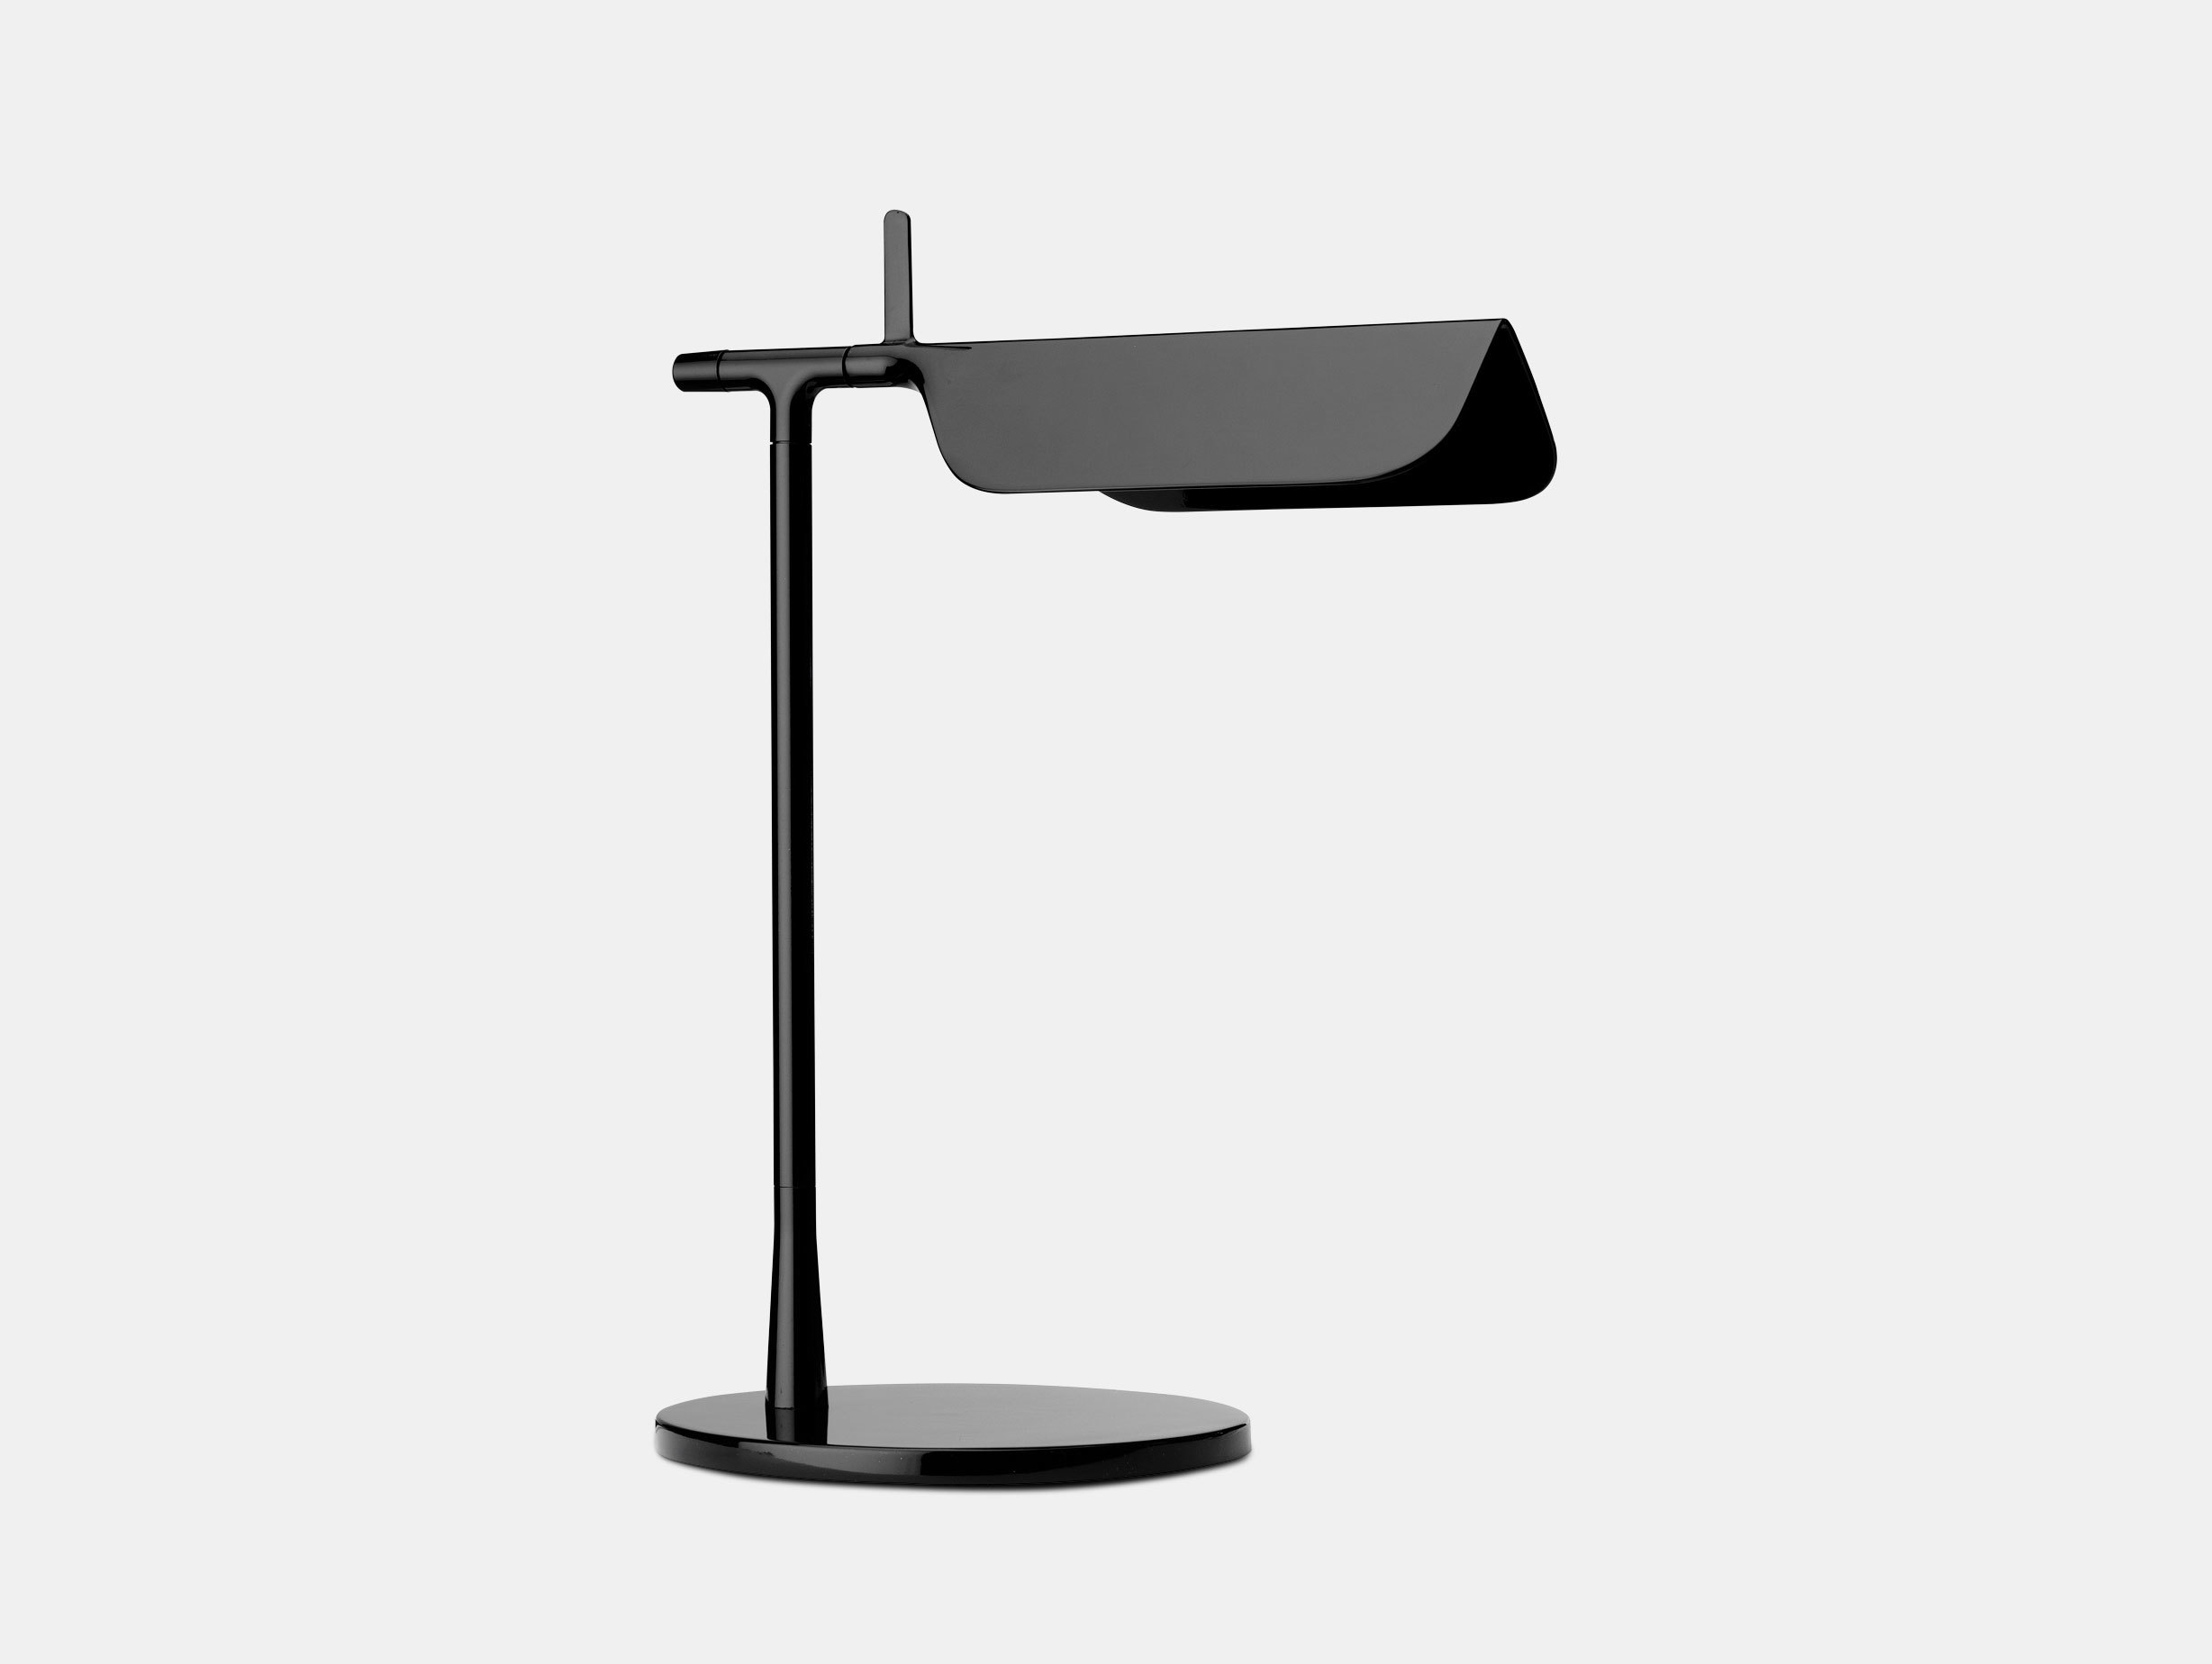 Tab T LED Desk Lamp image 1